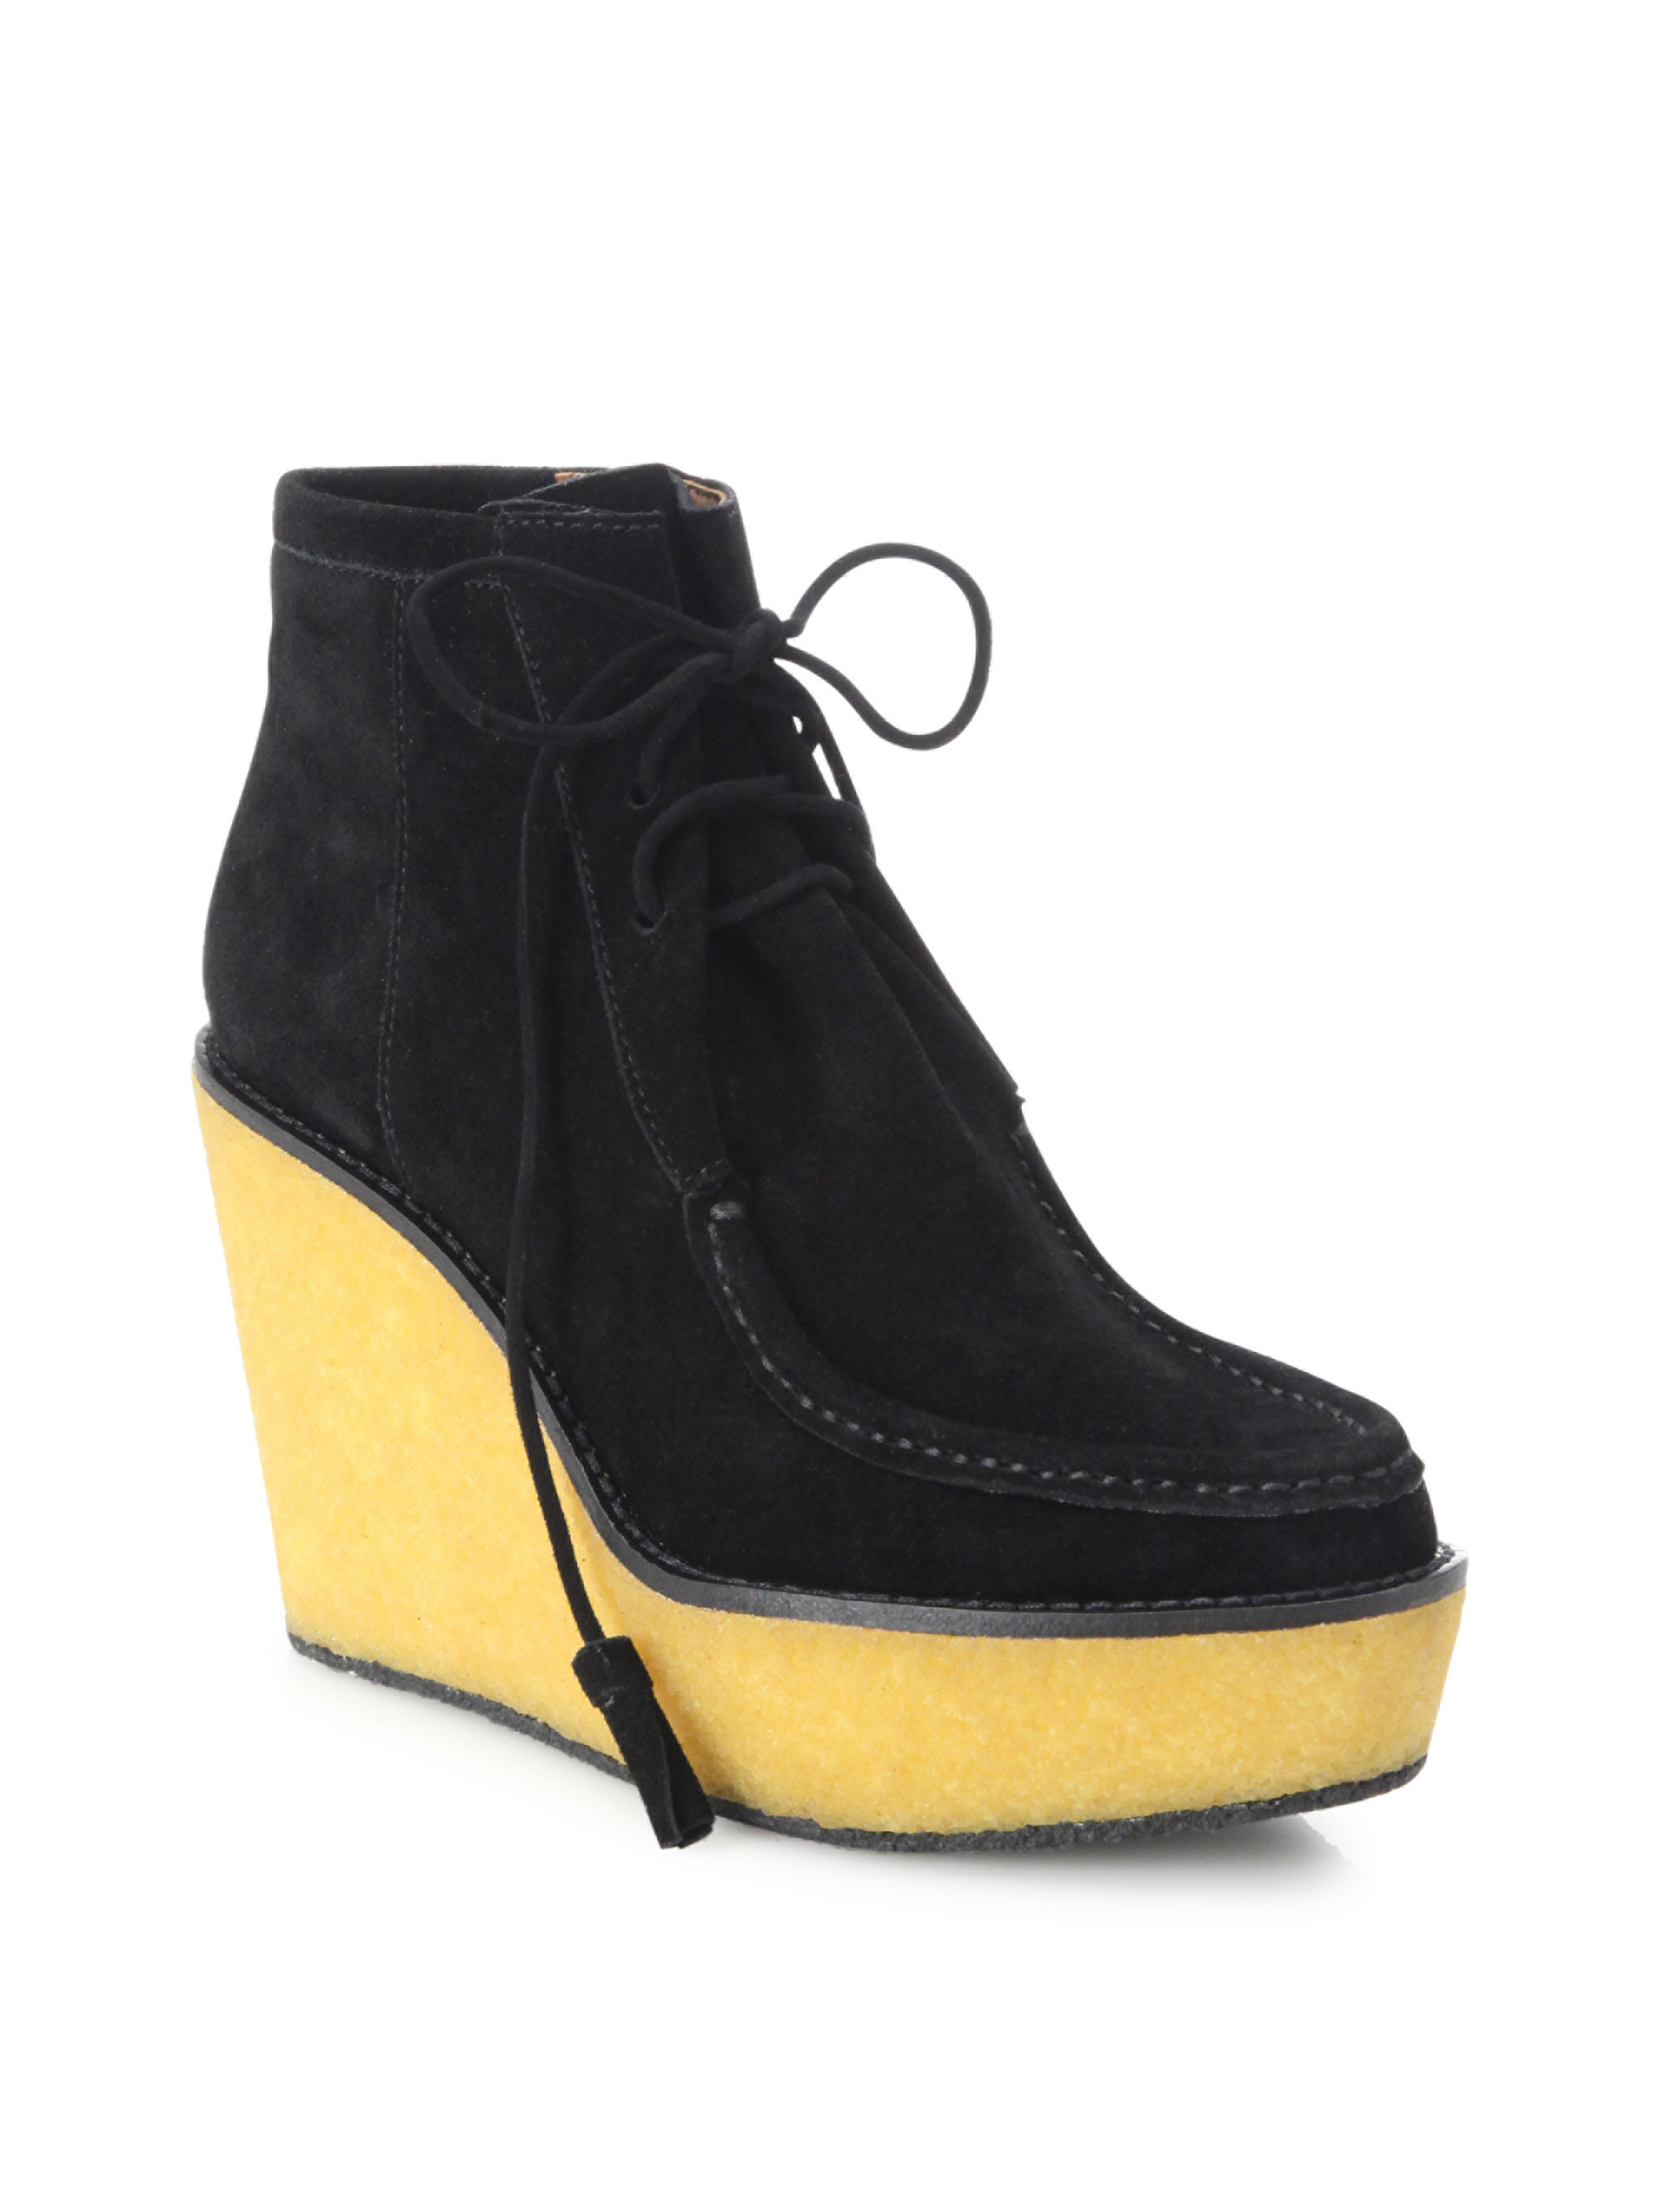 Derek Lam 10 Crosby Suede Round-Toe Booties discount latest discount find great original for sale clearance pictures cheap get authentic HxfEeB